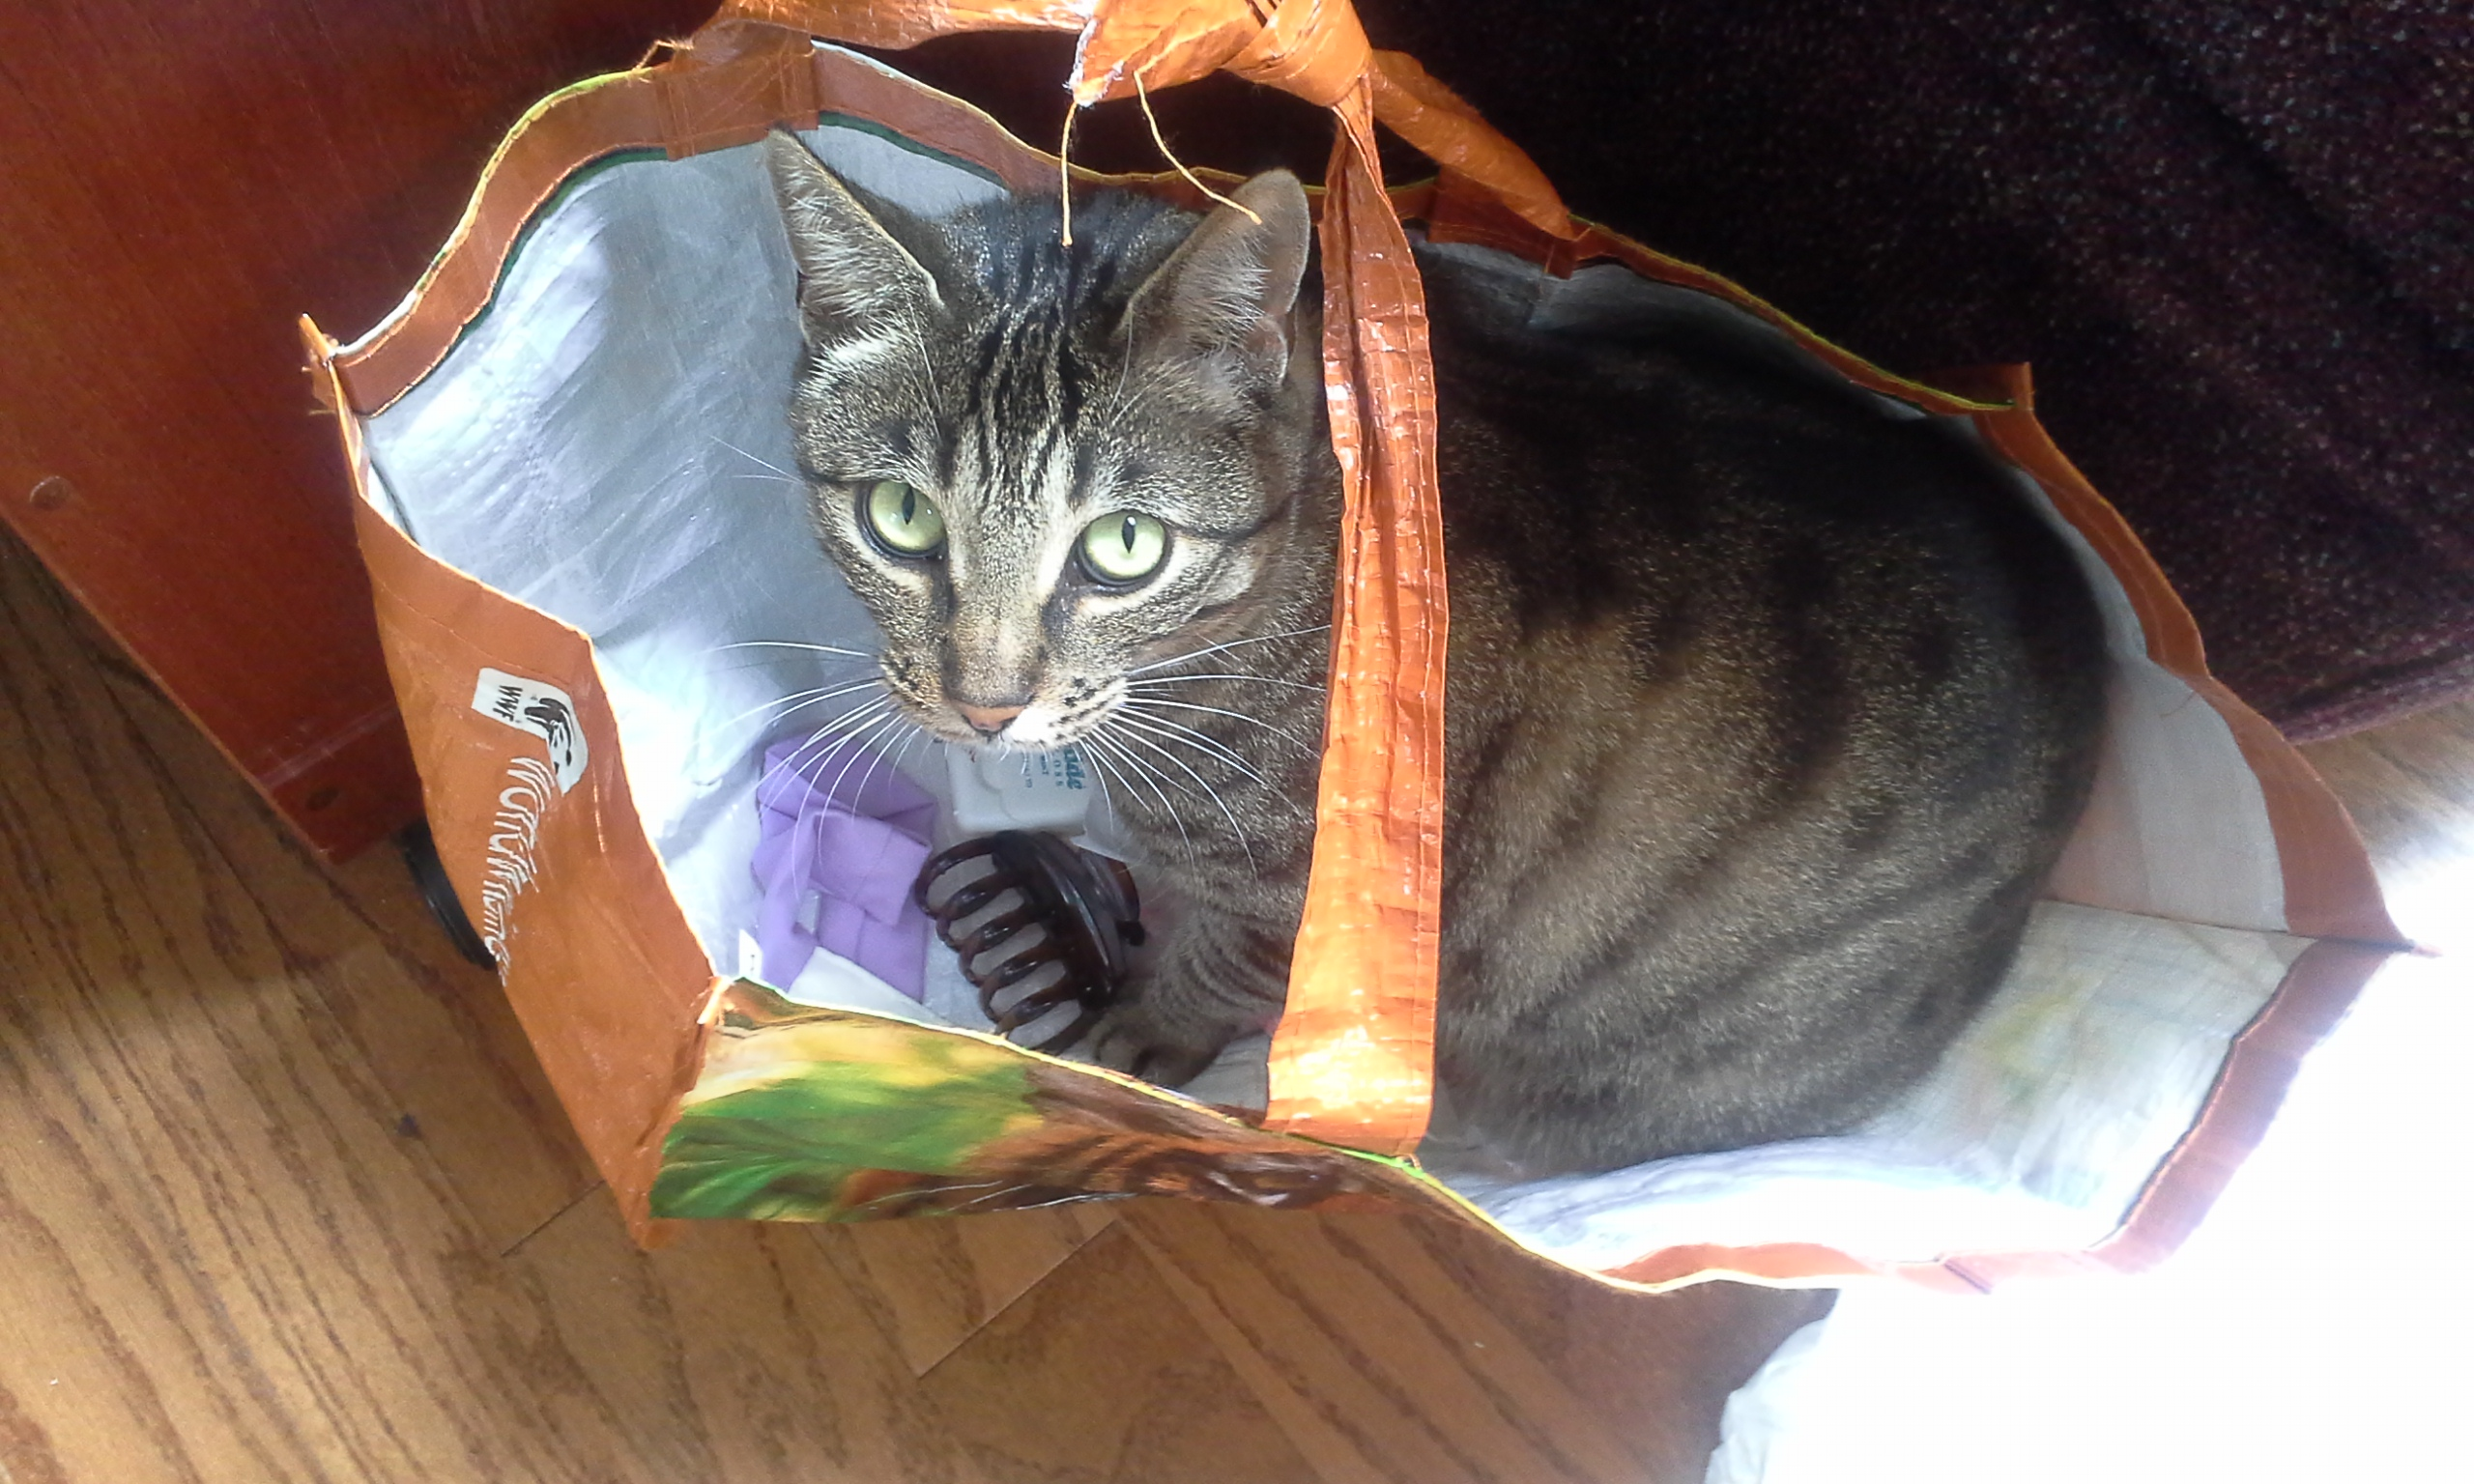 Curio in a World Wildlife Fund tote bag.